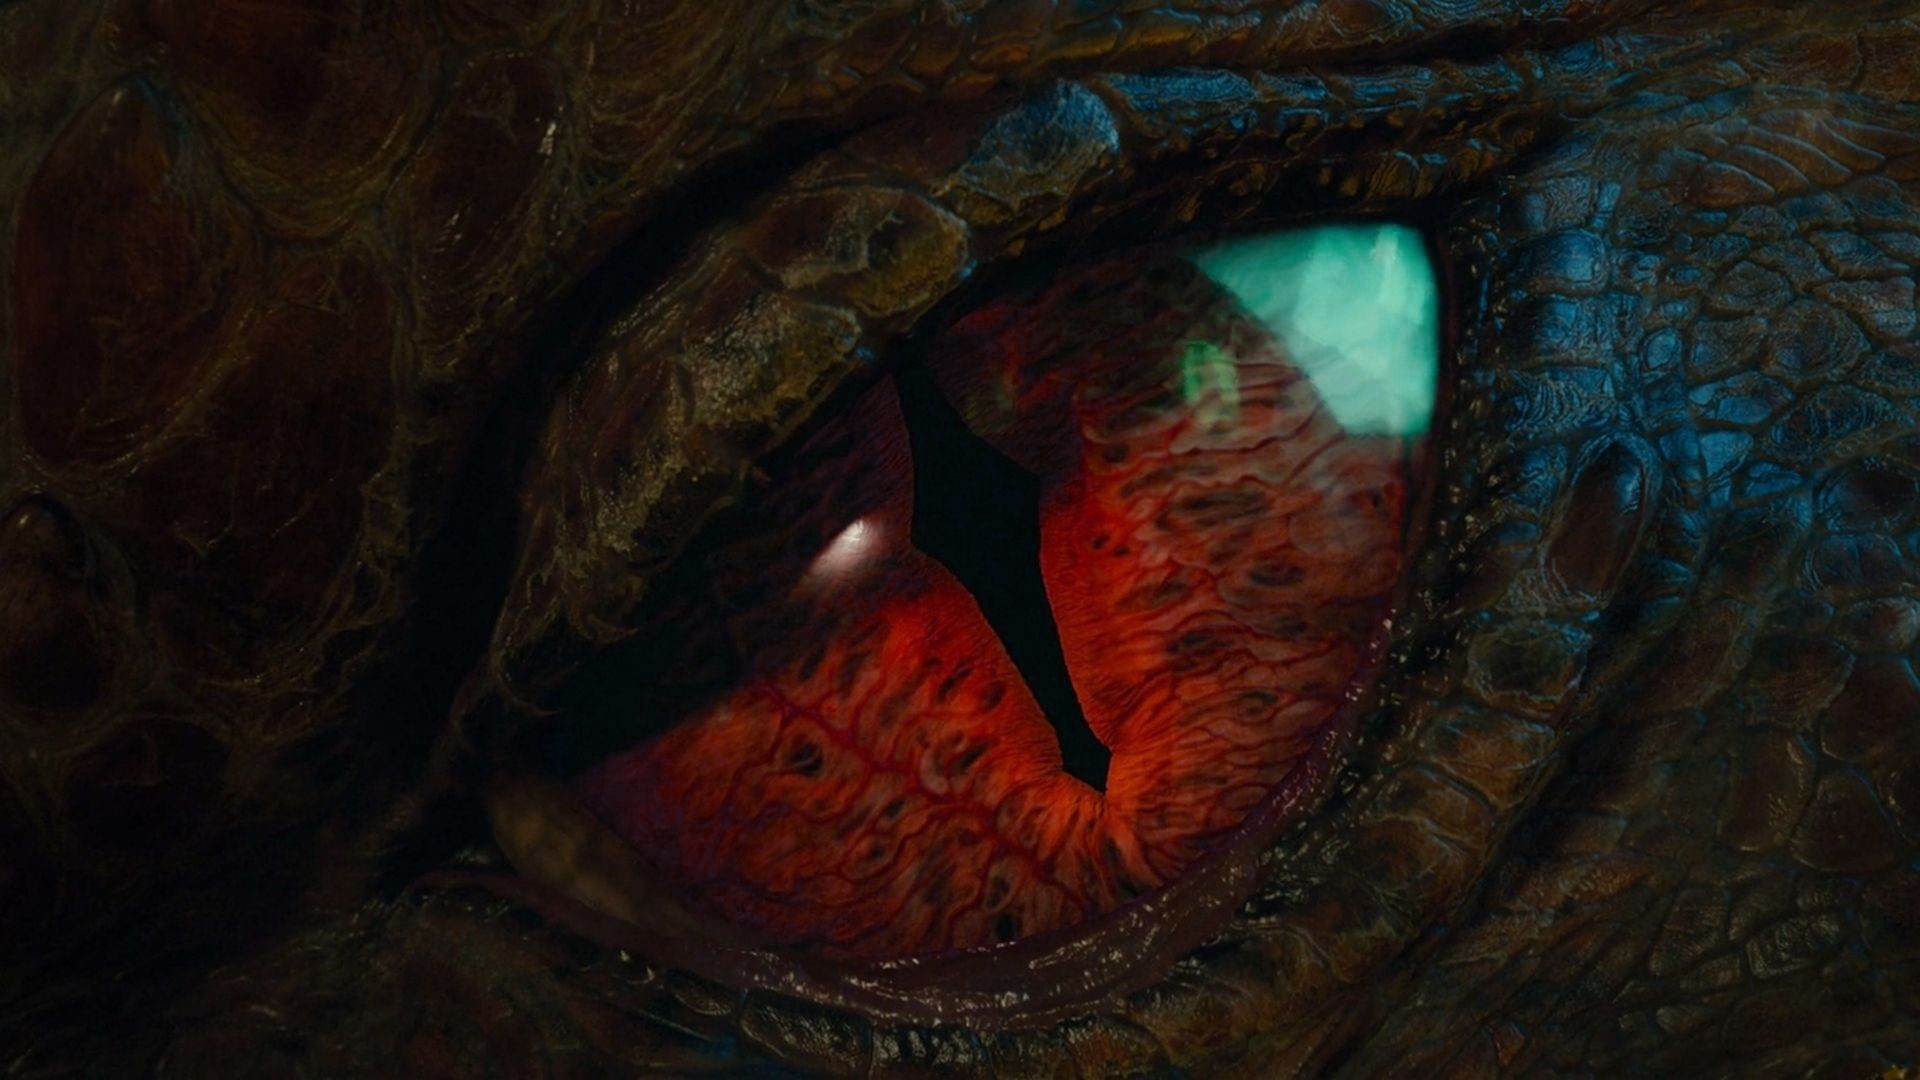 The Hobbit: The Desolation of Smaug Wallpapers